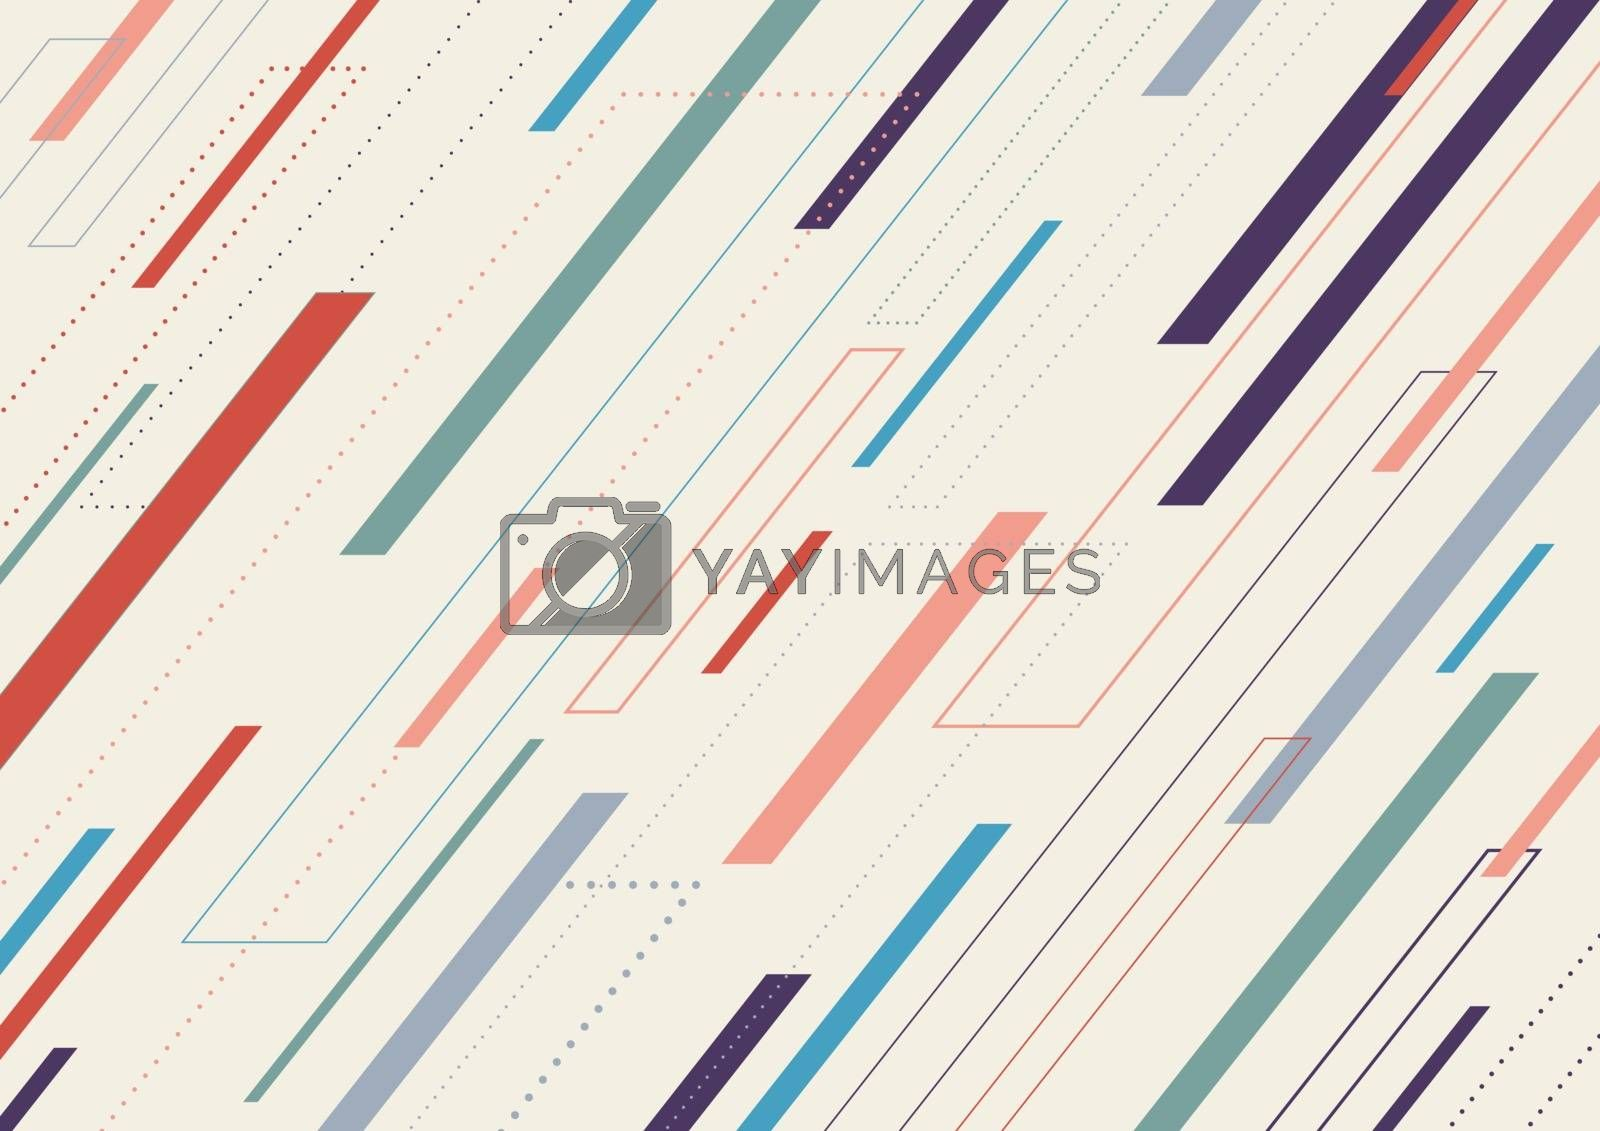 Abstract geometric dash lines diagonal pattern on white background. Modern stylish repeat geometry design. Vector illustration